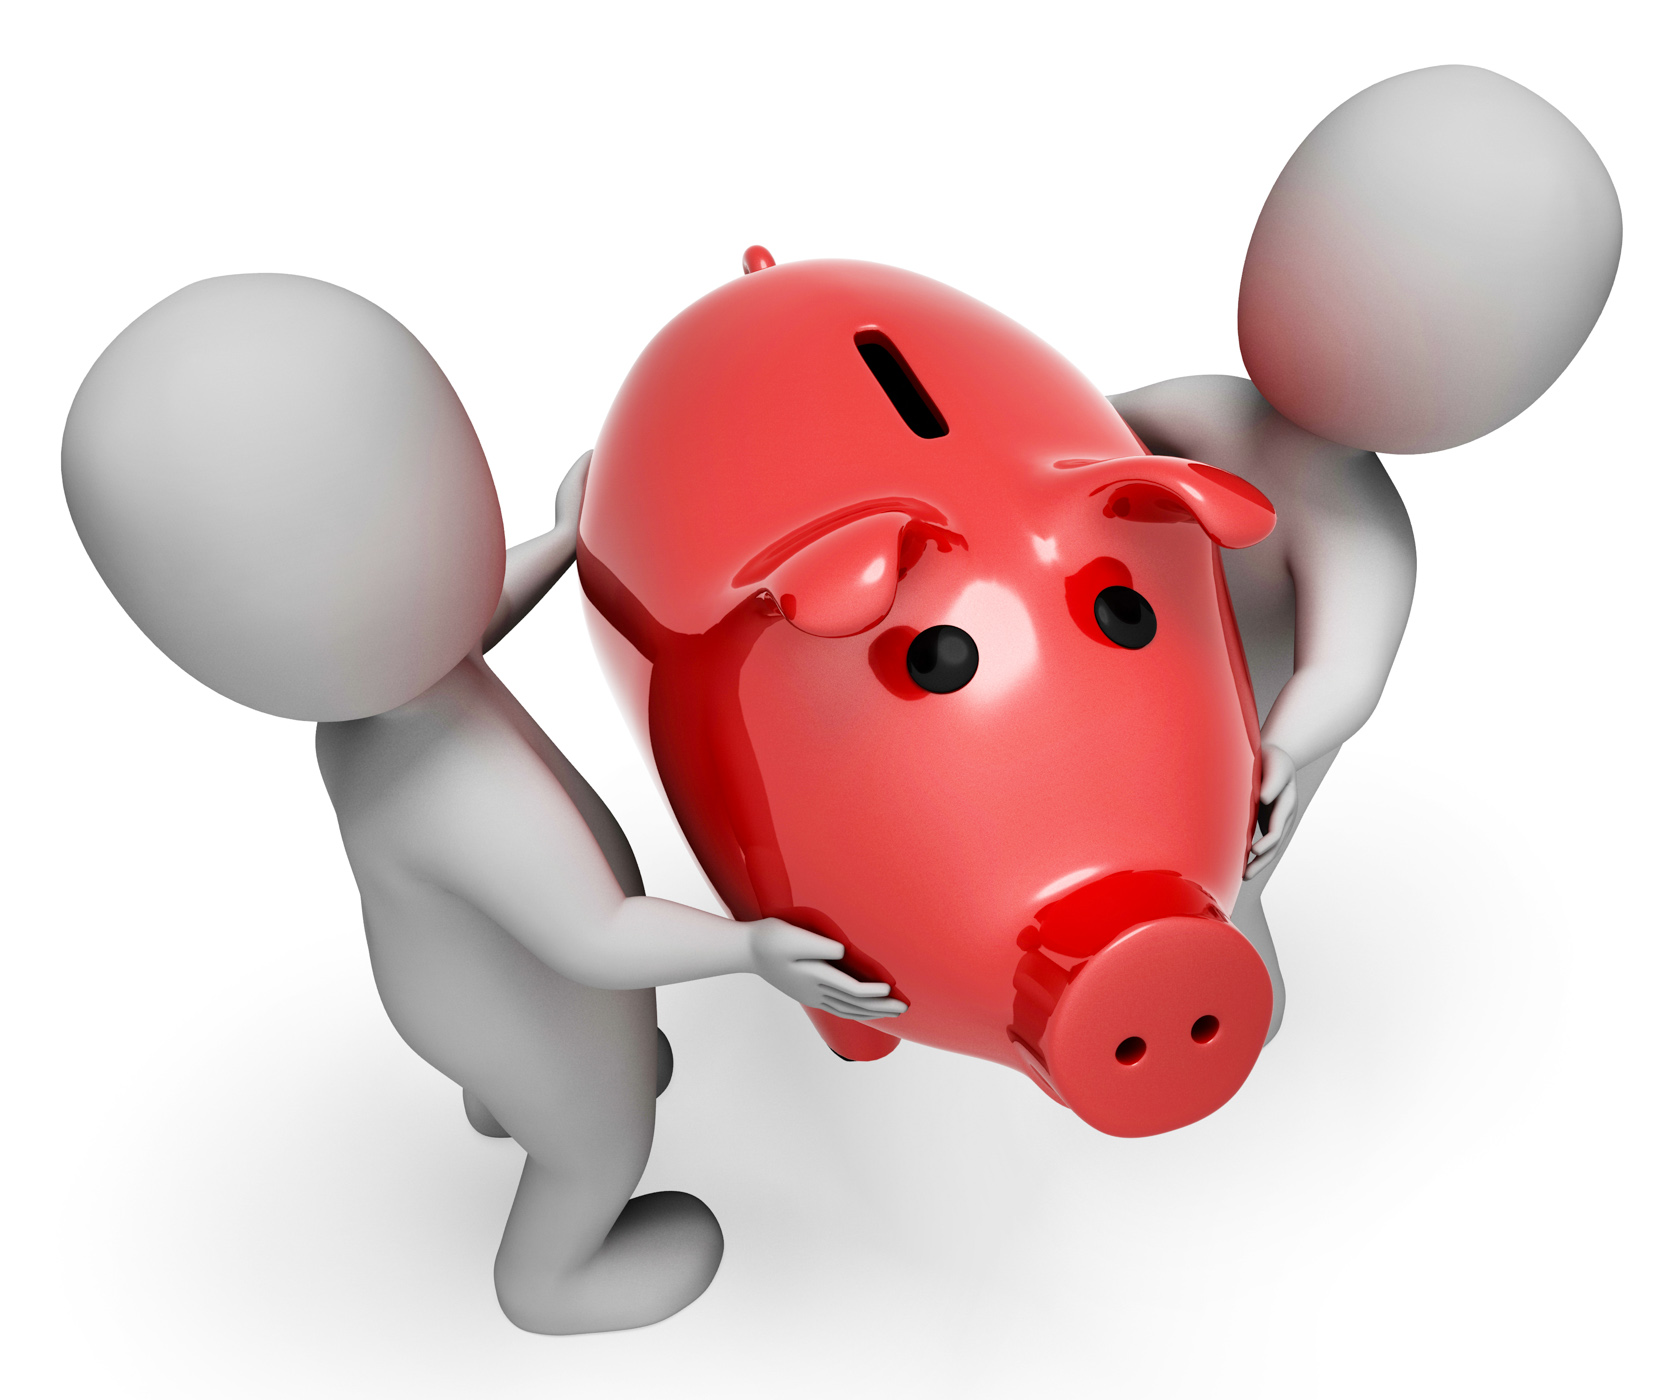 Money Save Indicates Piggy Bank And Finances 3d Rendering, Moneybox, Wealth, Savings, Saving, HQ Photo